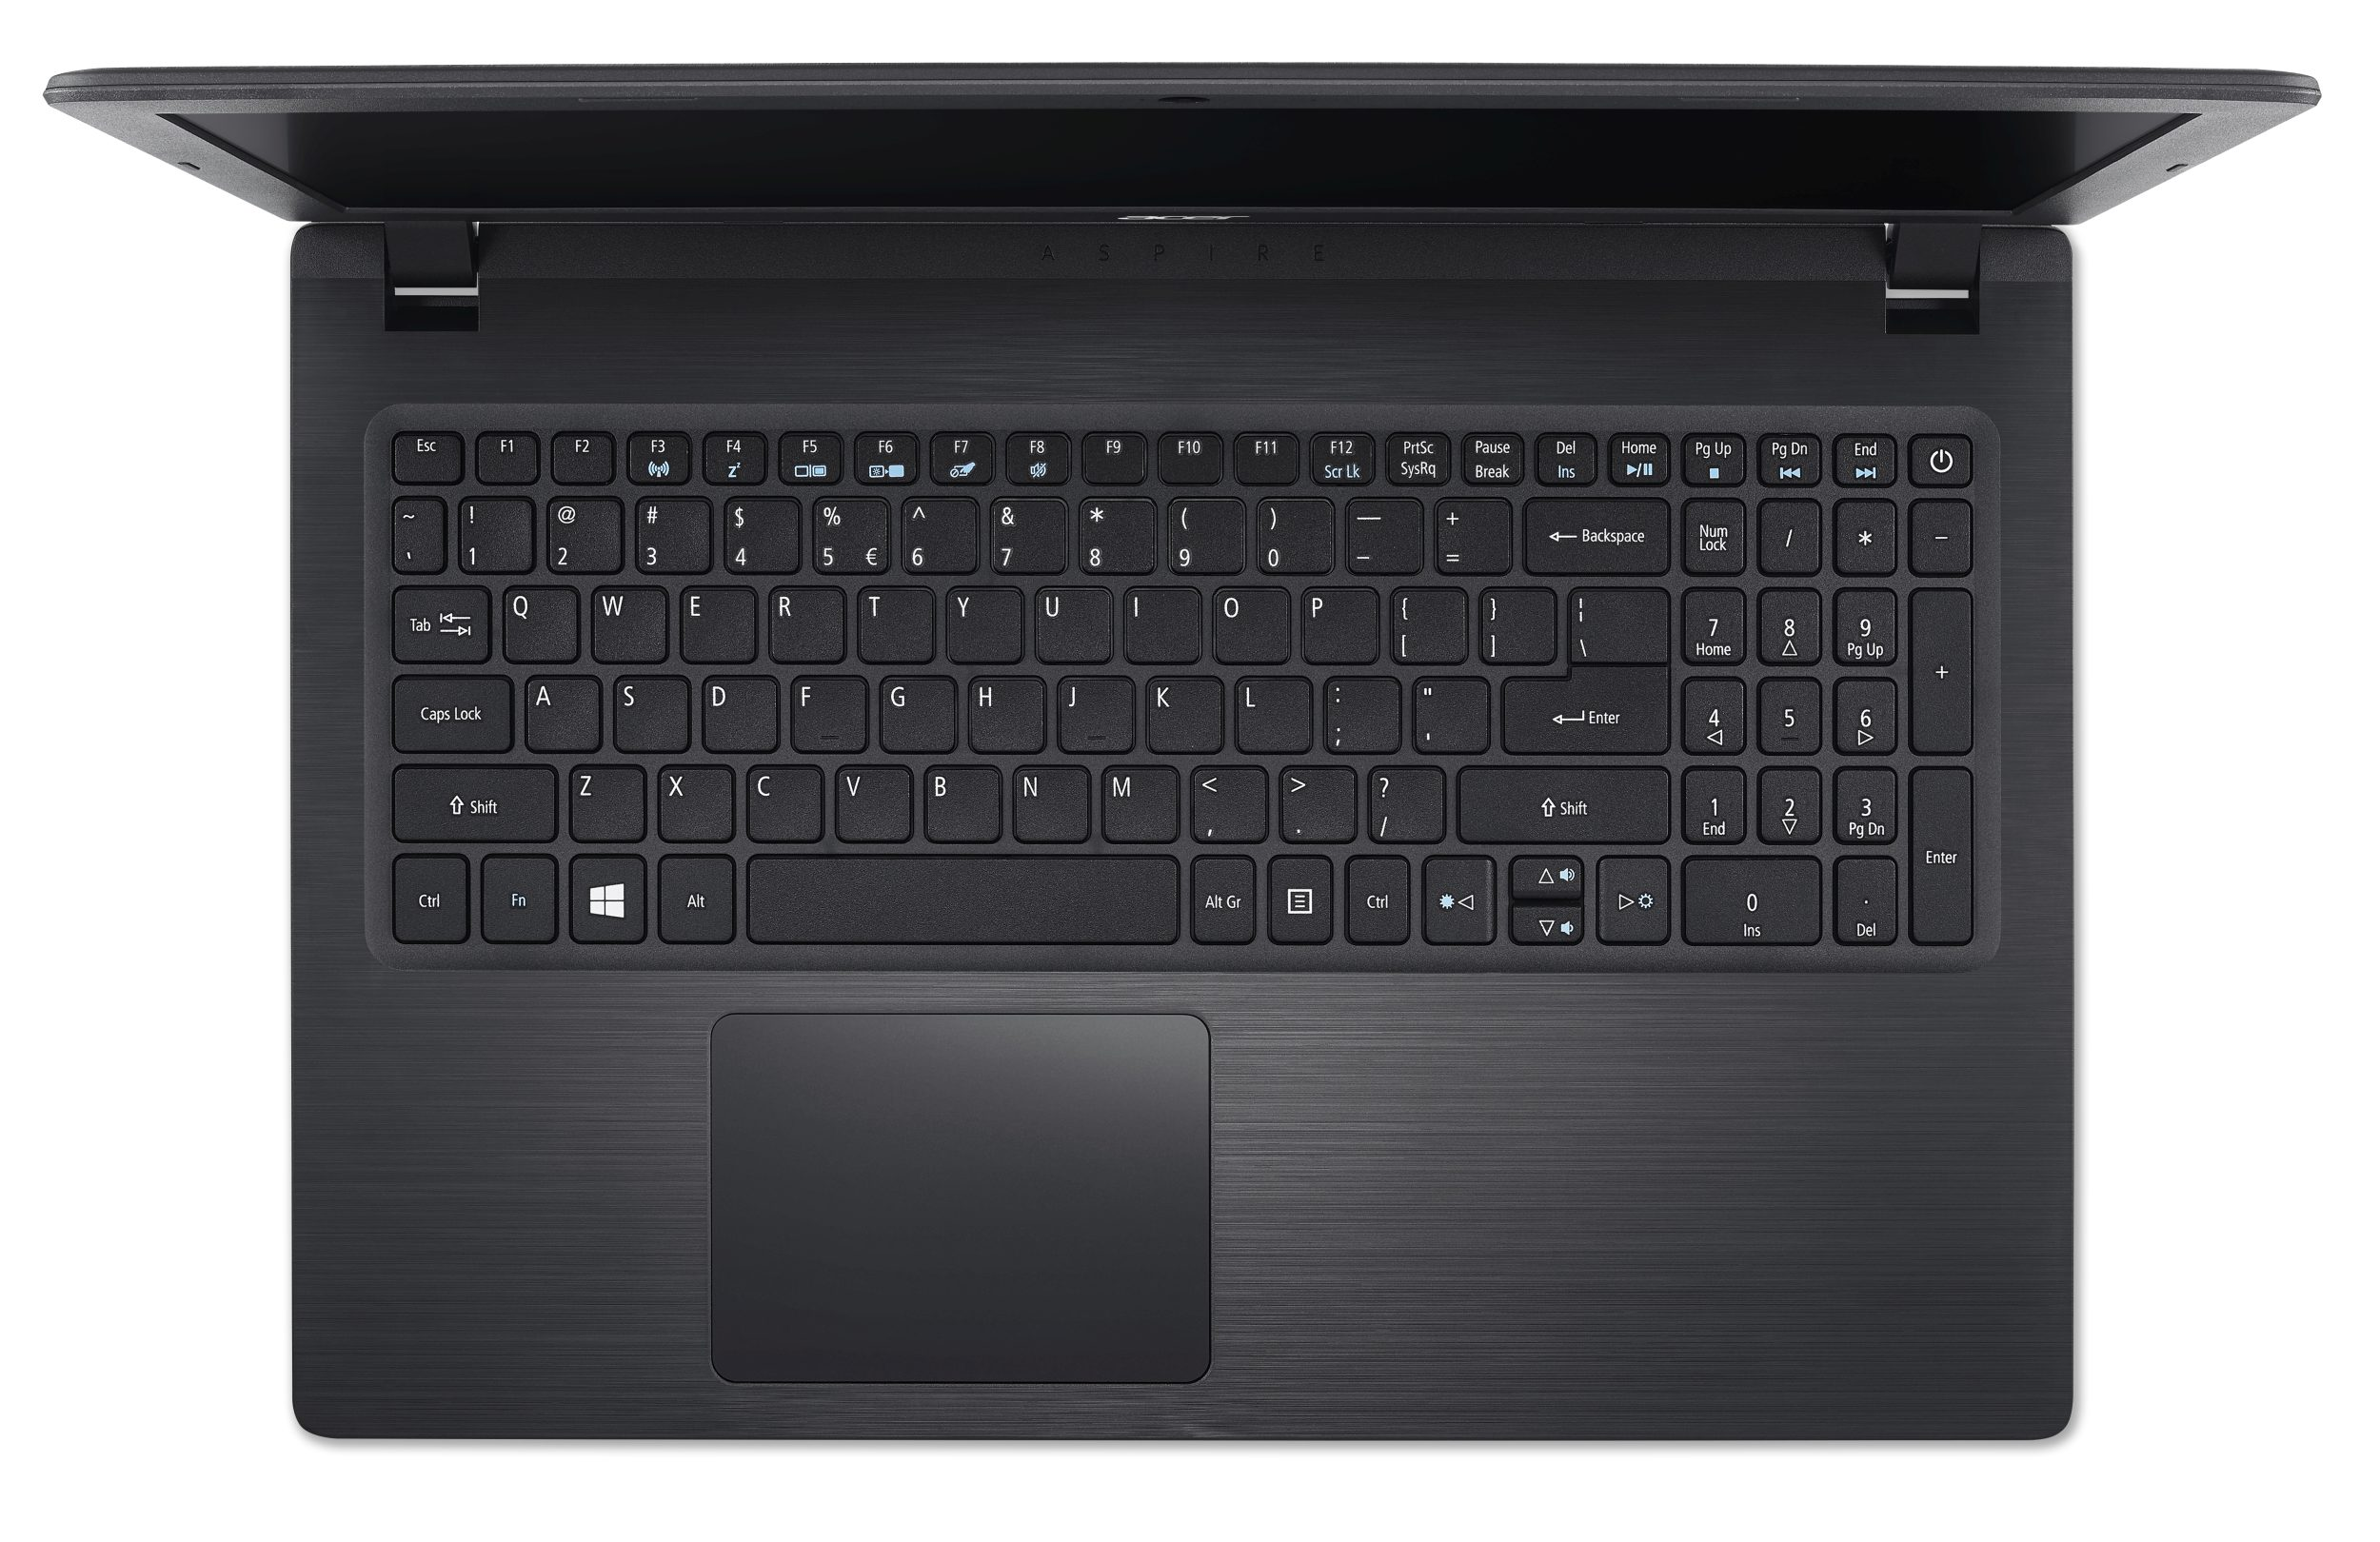 "Acer Aspire 3 (A315-21G-44FZ) AMD A4-9120/4GB+4GB/1TB/Radeon 520 2GB/15.6"" HD matný/BT/W10 Home/Black"